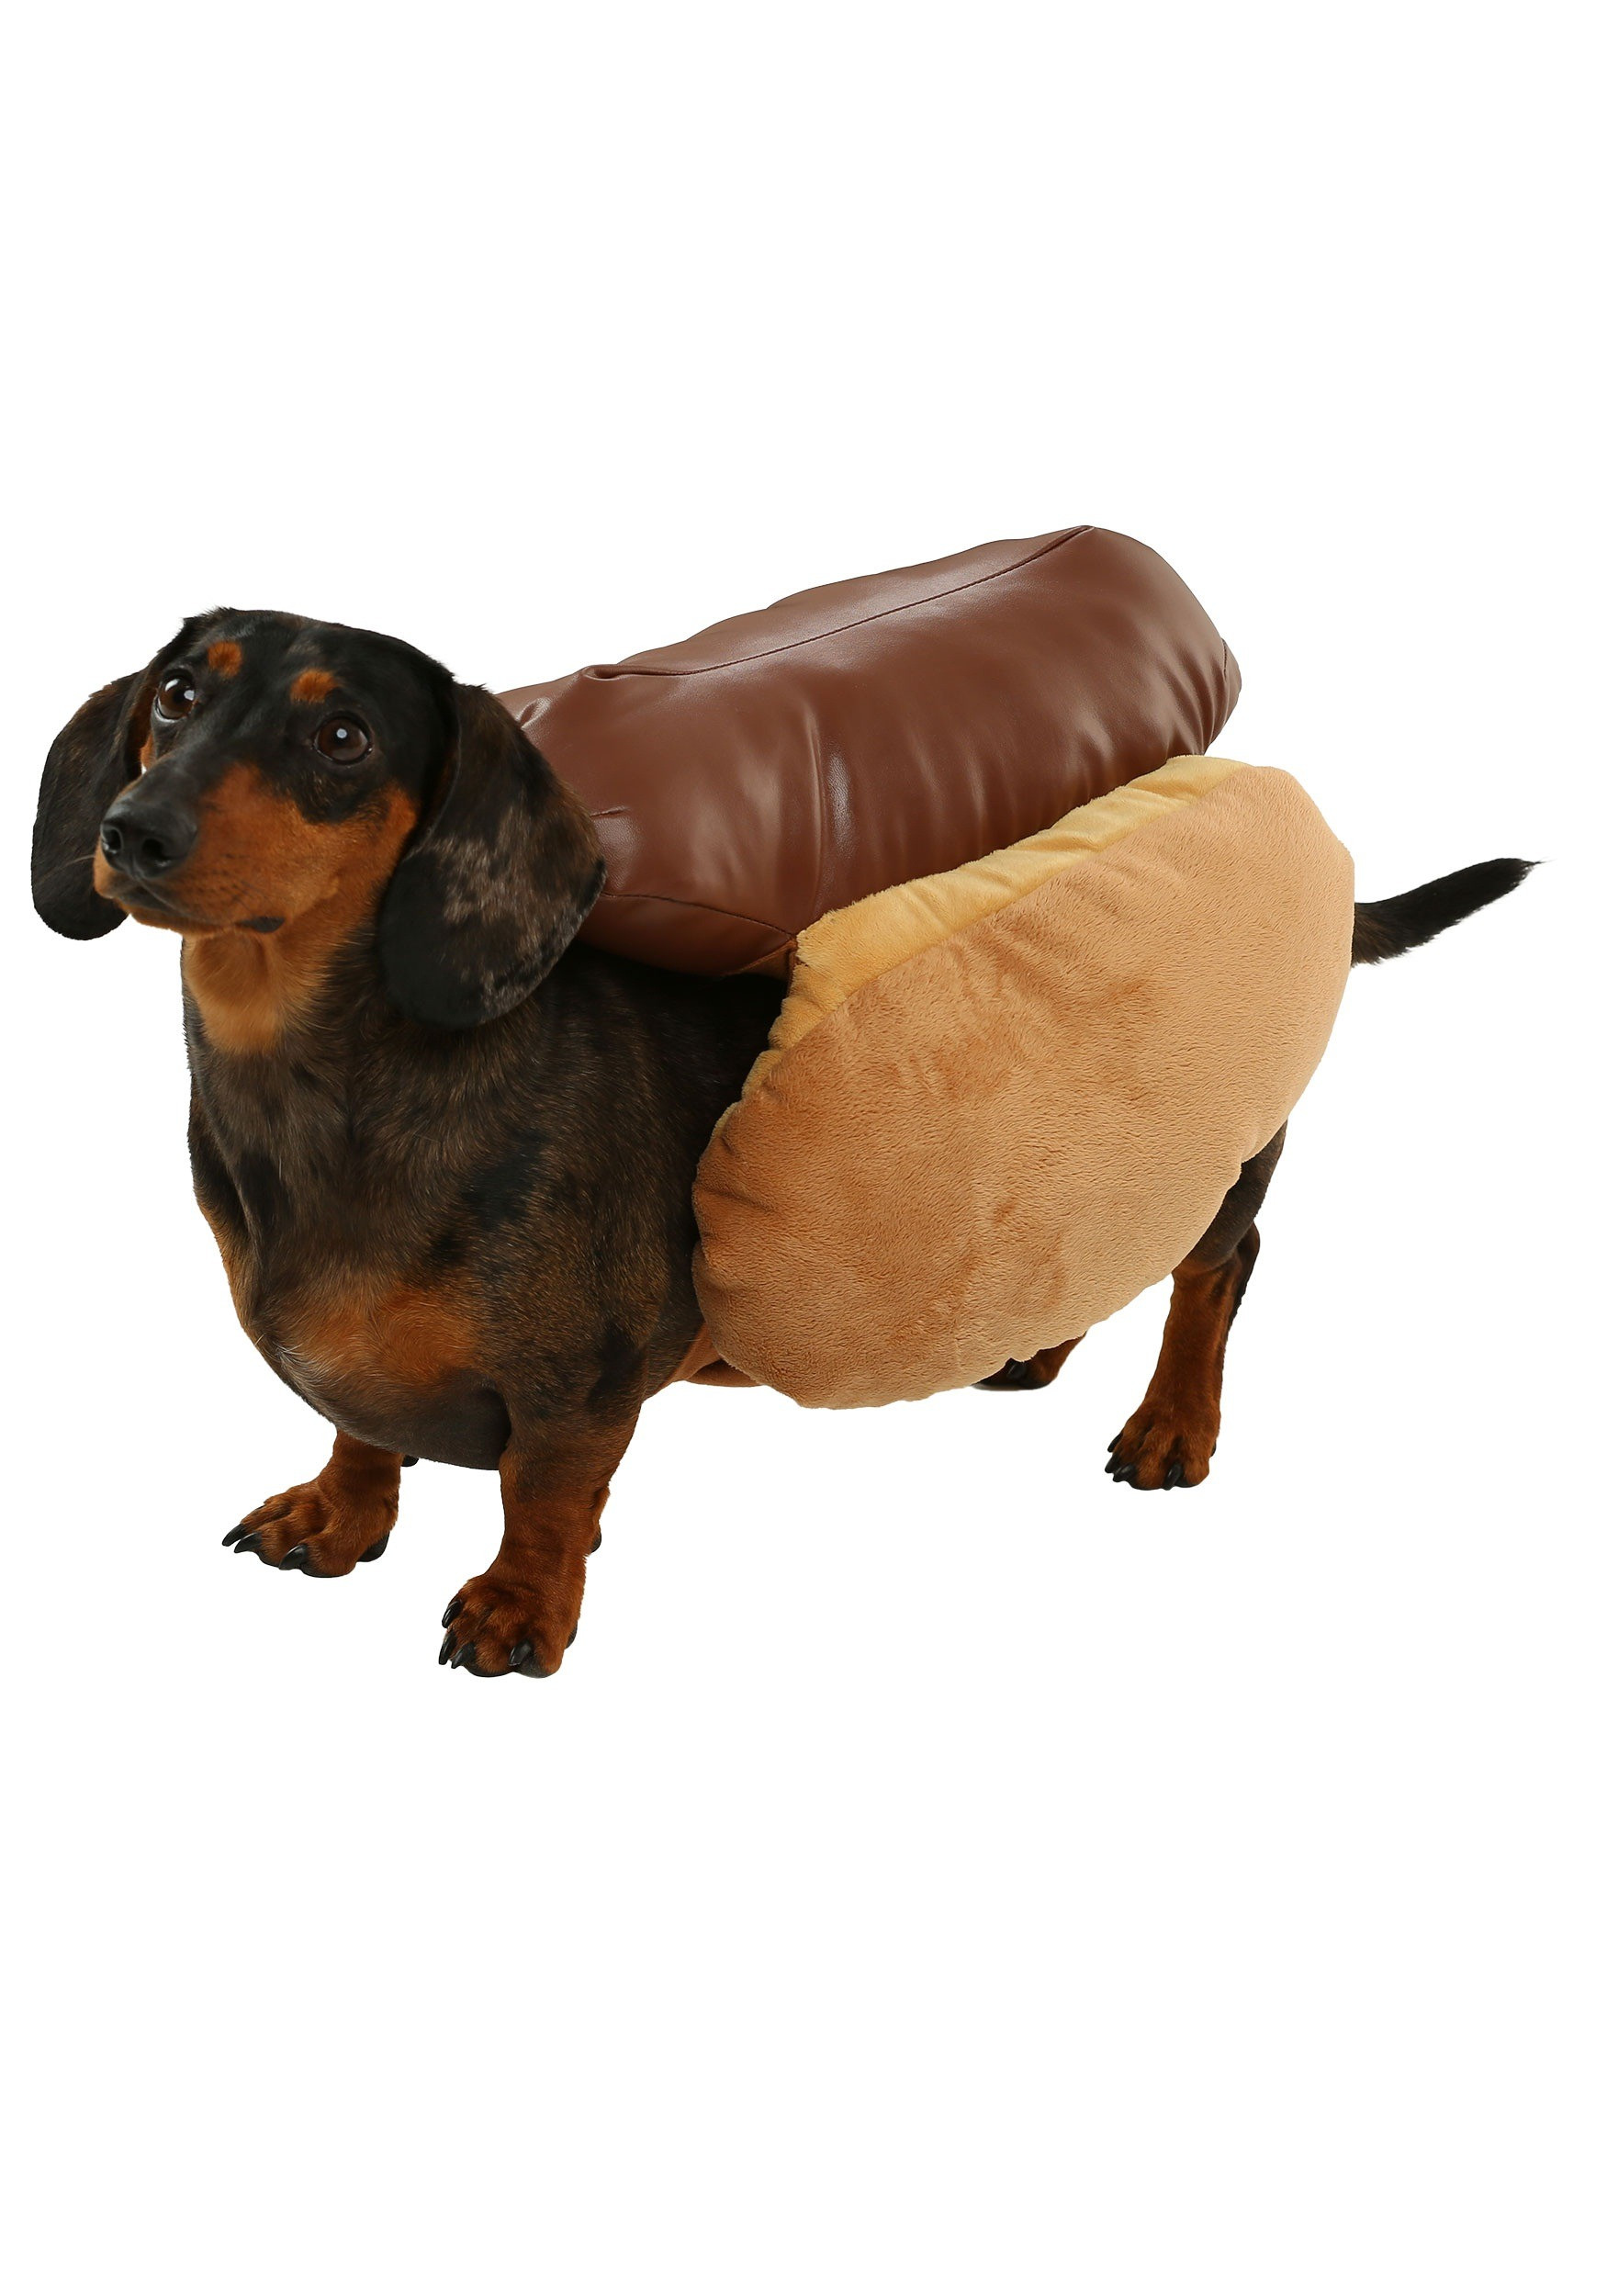 Hot Dog Halloween Costumes For Dogs  Hot Dog Costume for Dogs